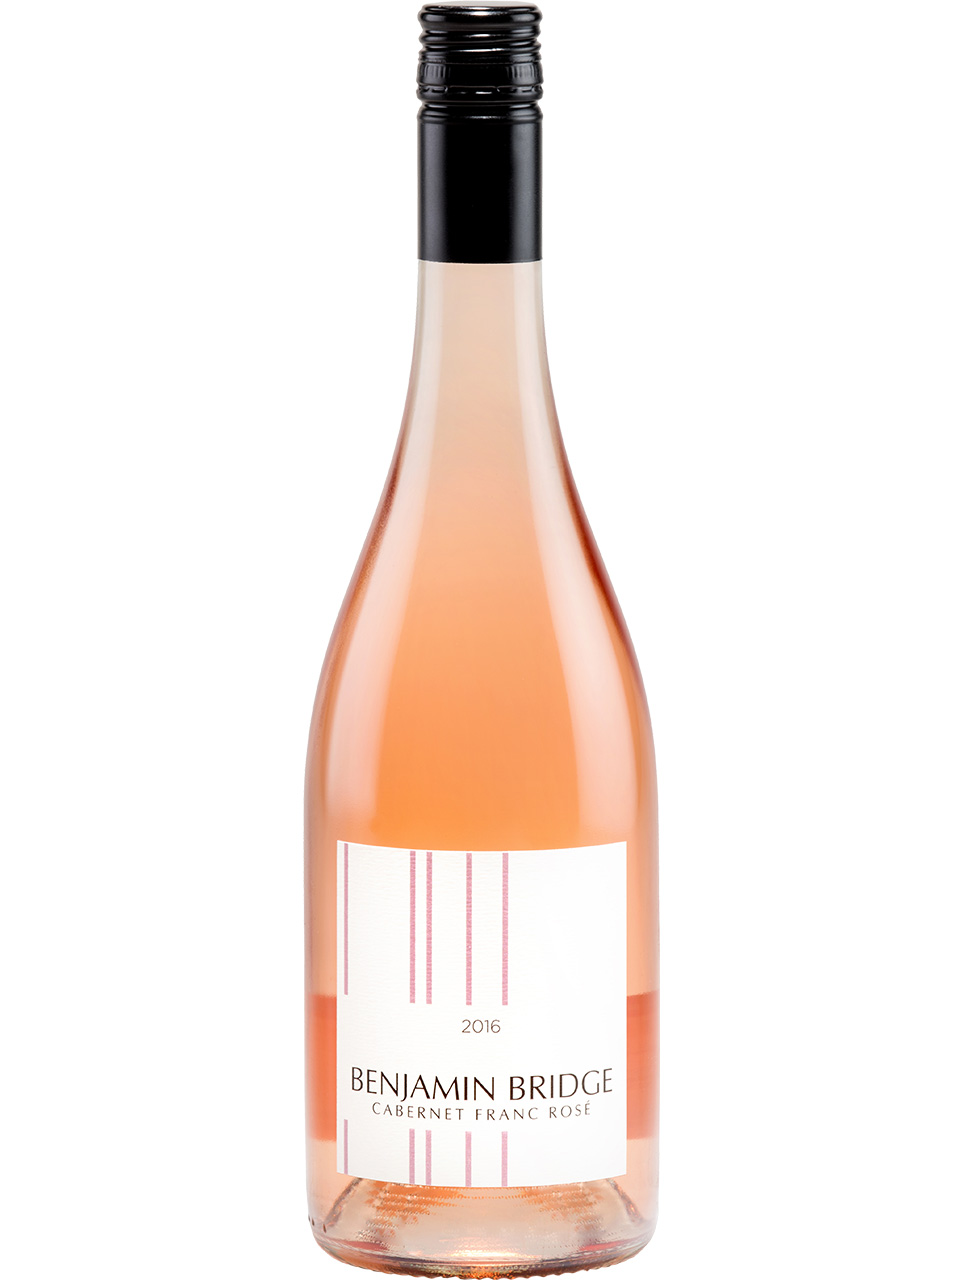 Benjamin Bridge Cabernet Franc Rose